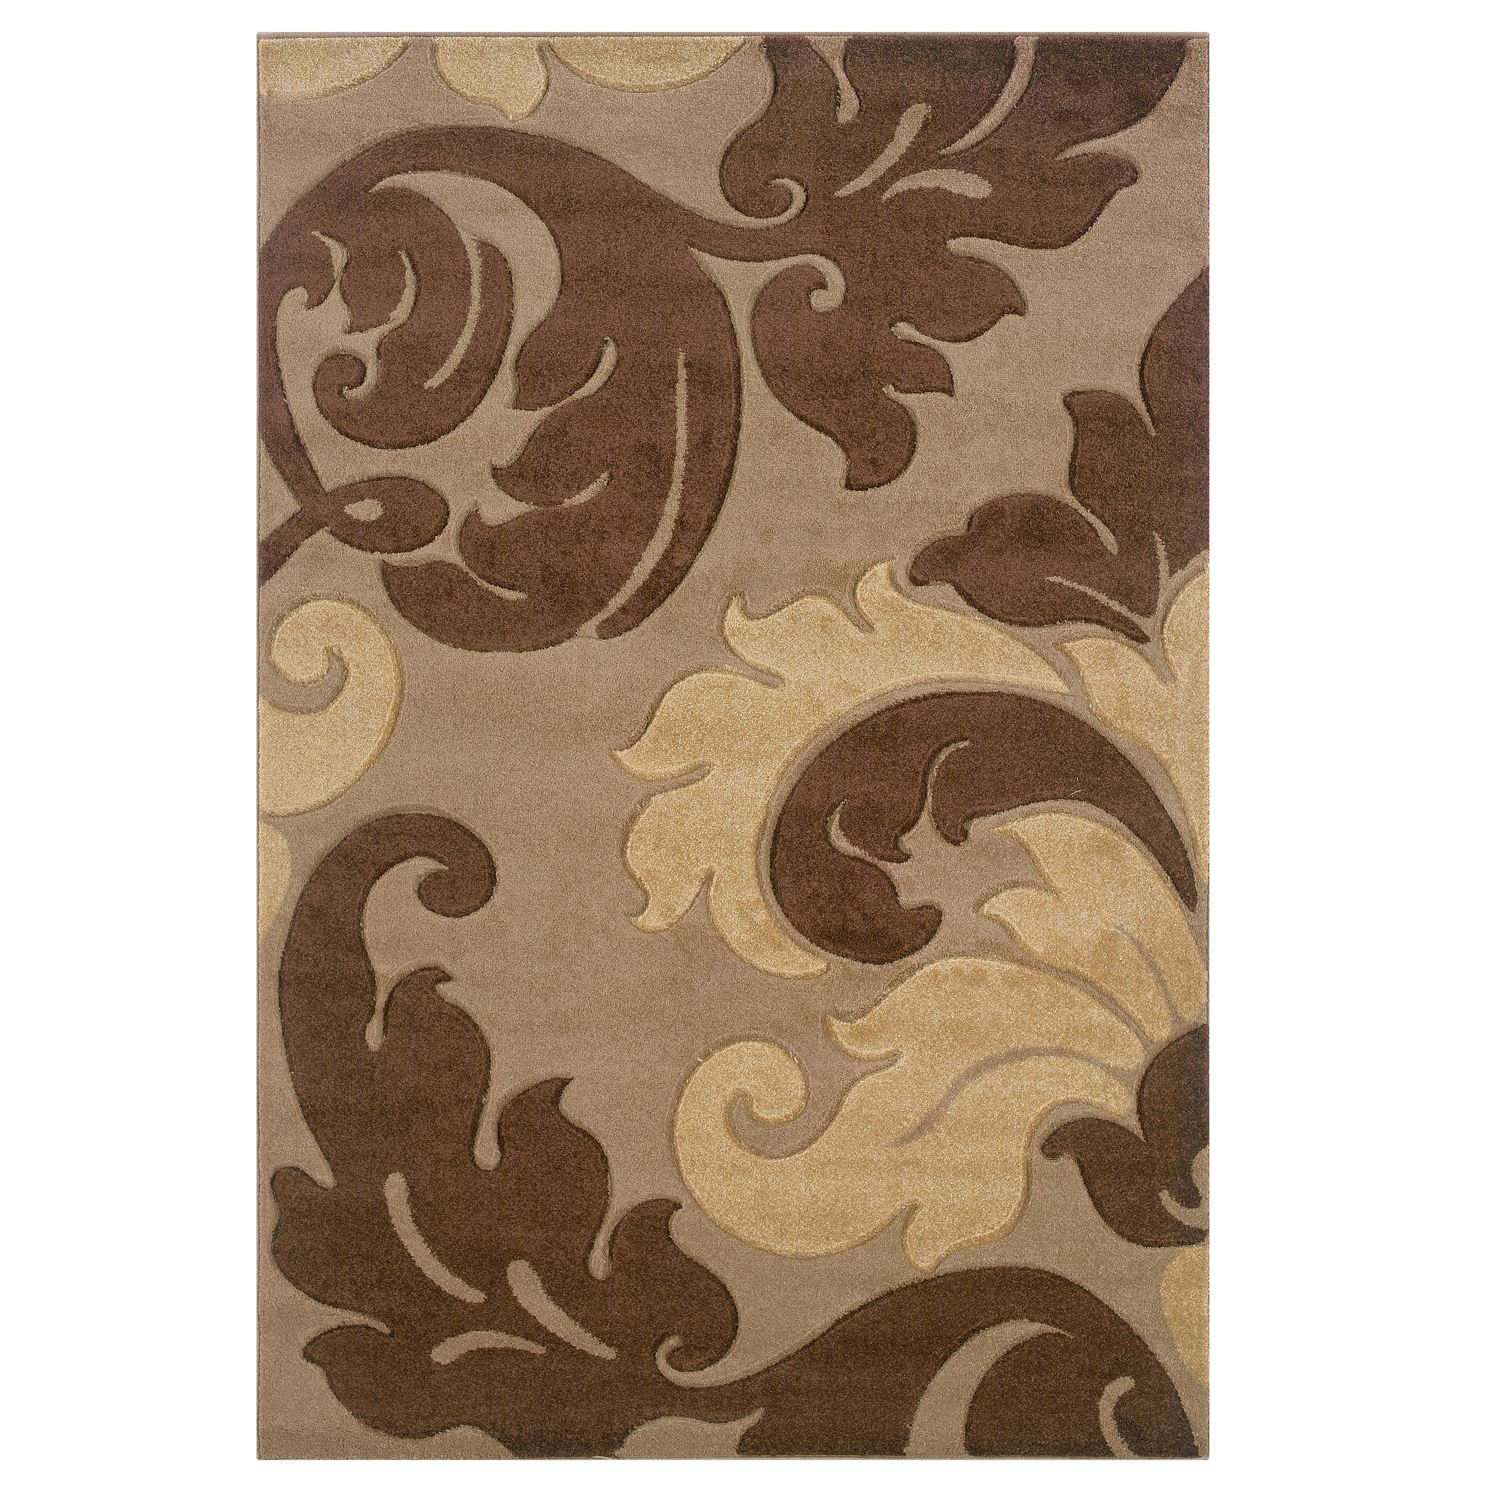 Corfu Tan Rug Collection,